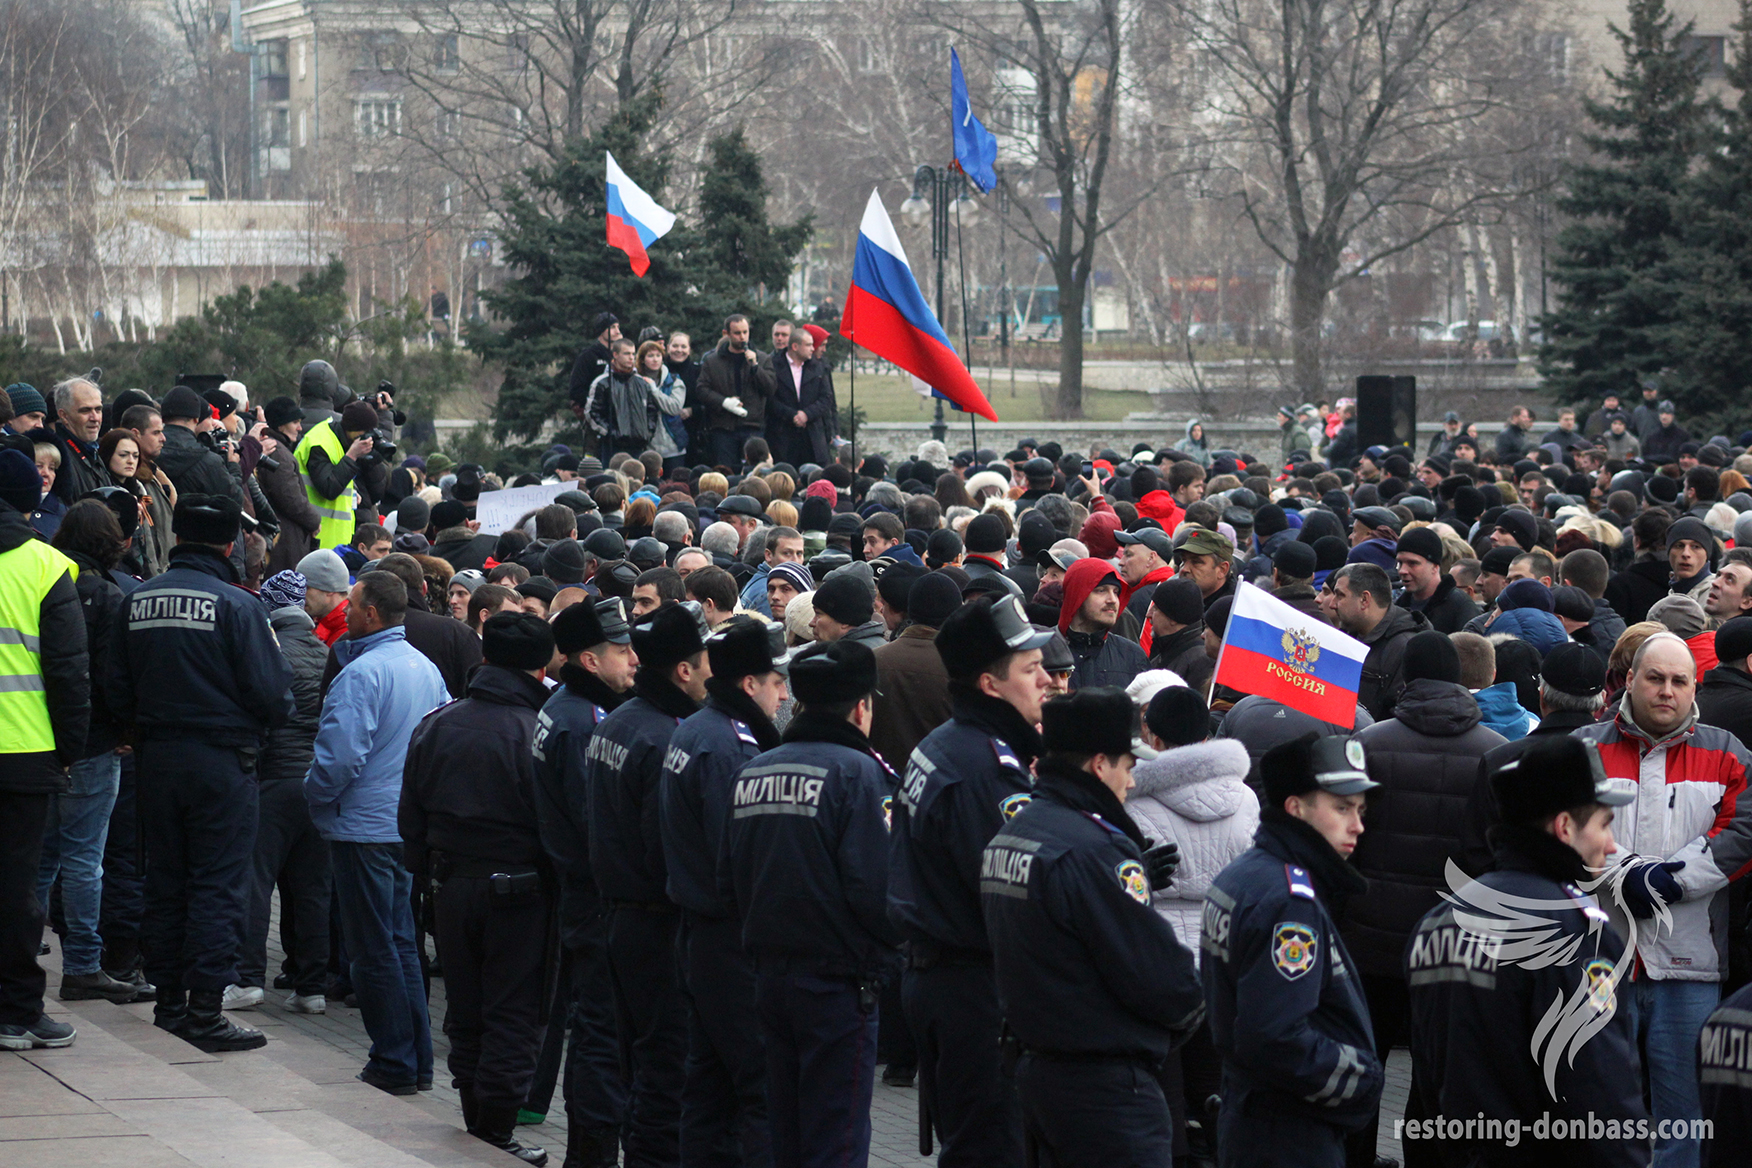 Speech by Paul Gubarev in front of Donetsk Regional State Administration, March 5, 2014